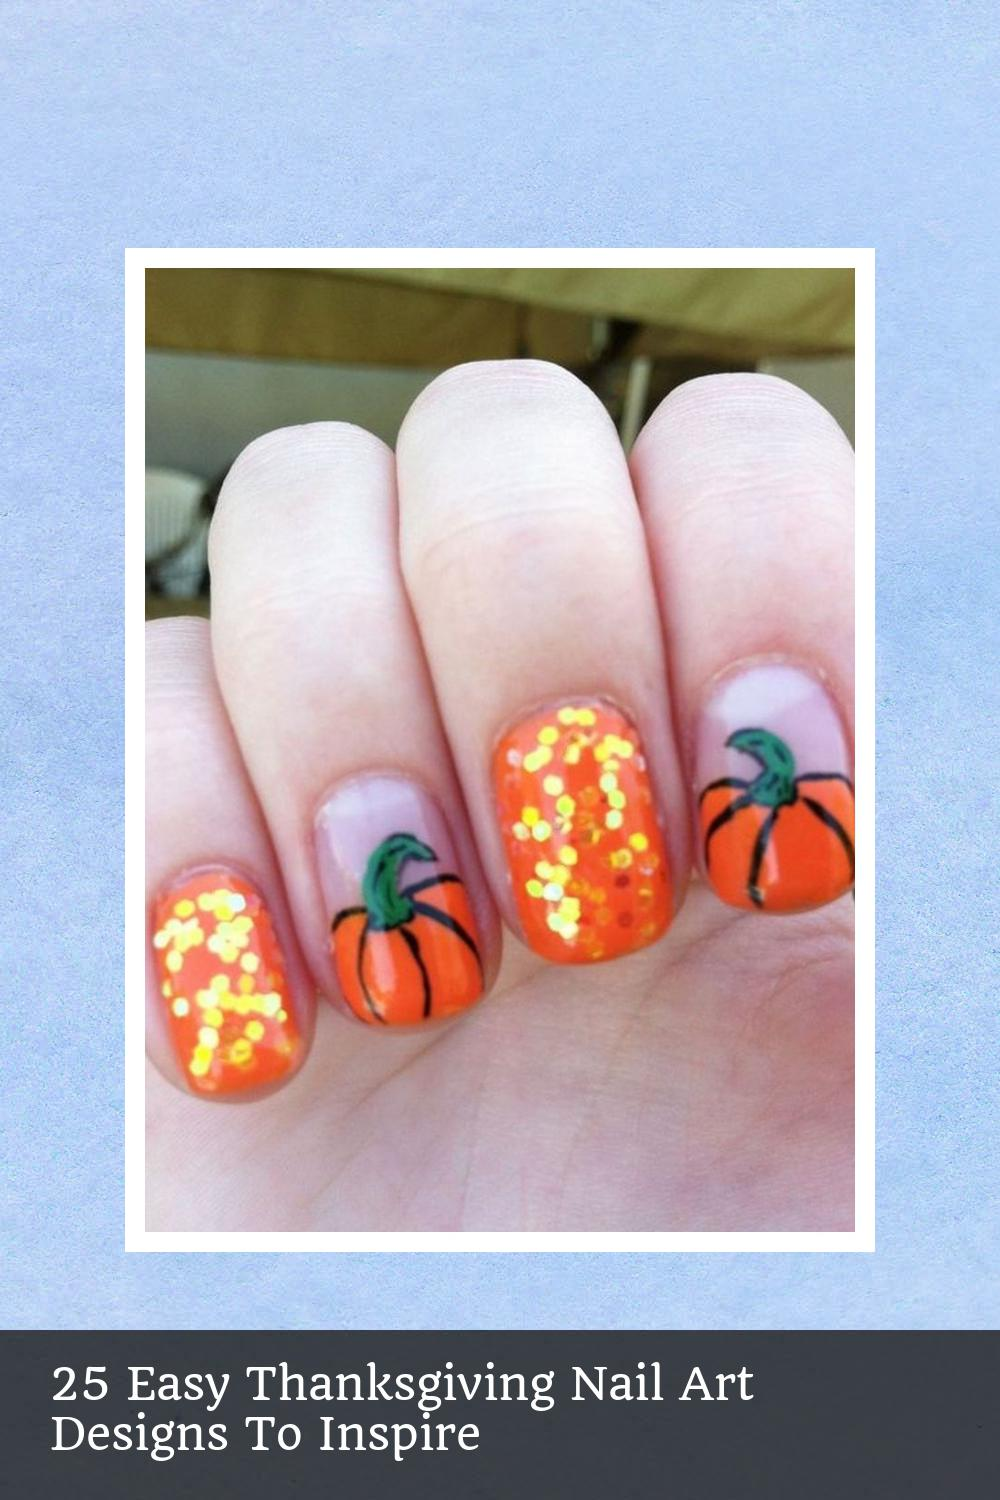 25 Easy Thanksgiving Nail Art Designs To Inspire 22